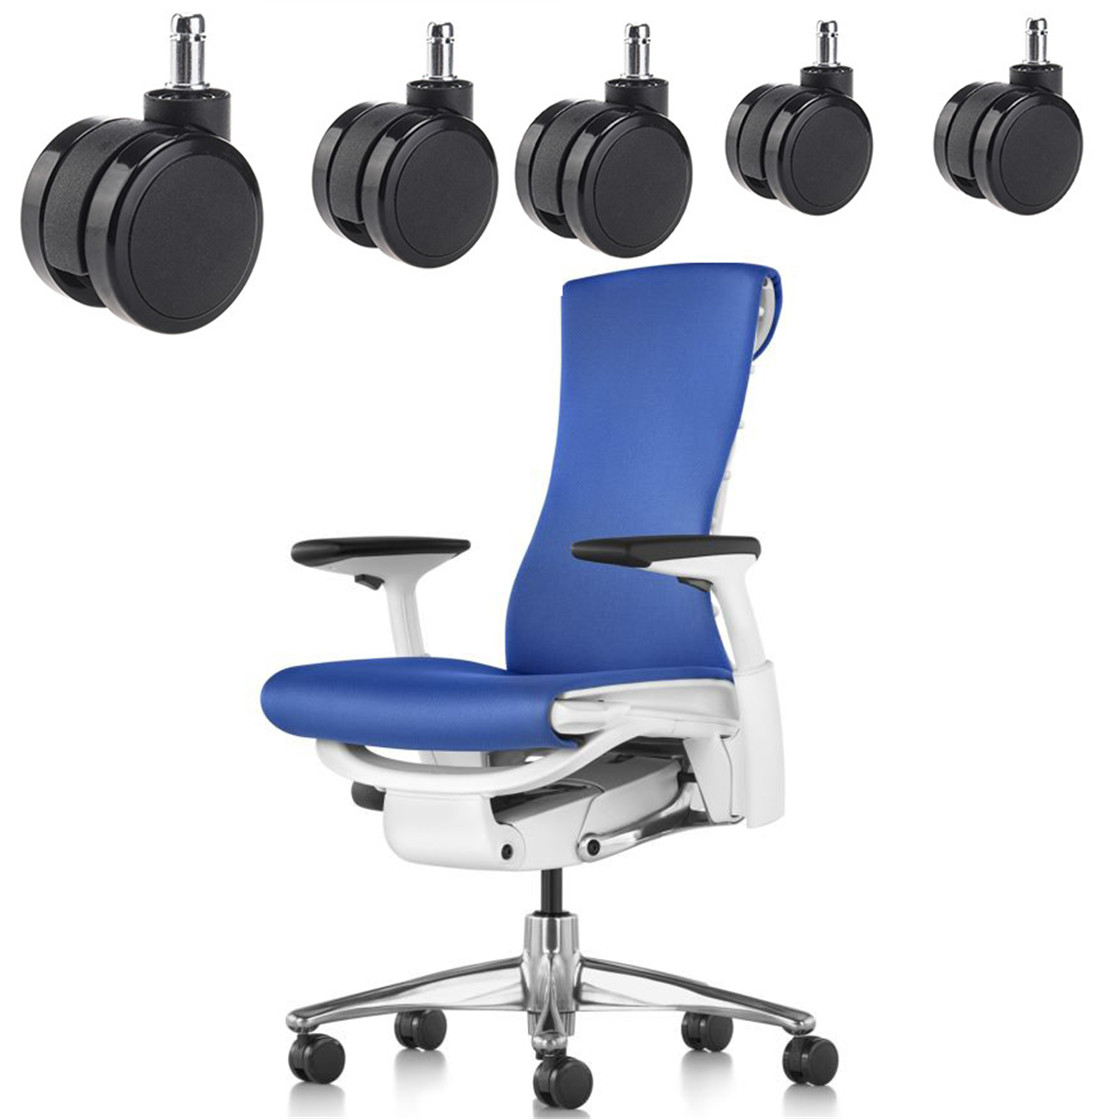 where can i bulk buy bifma certified office chair caster wheels set of 5 components